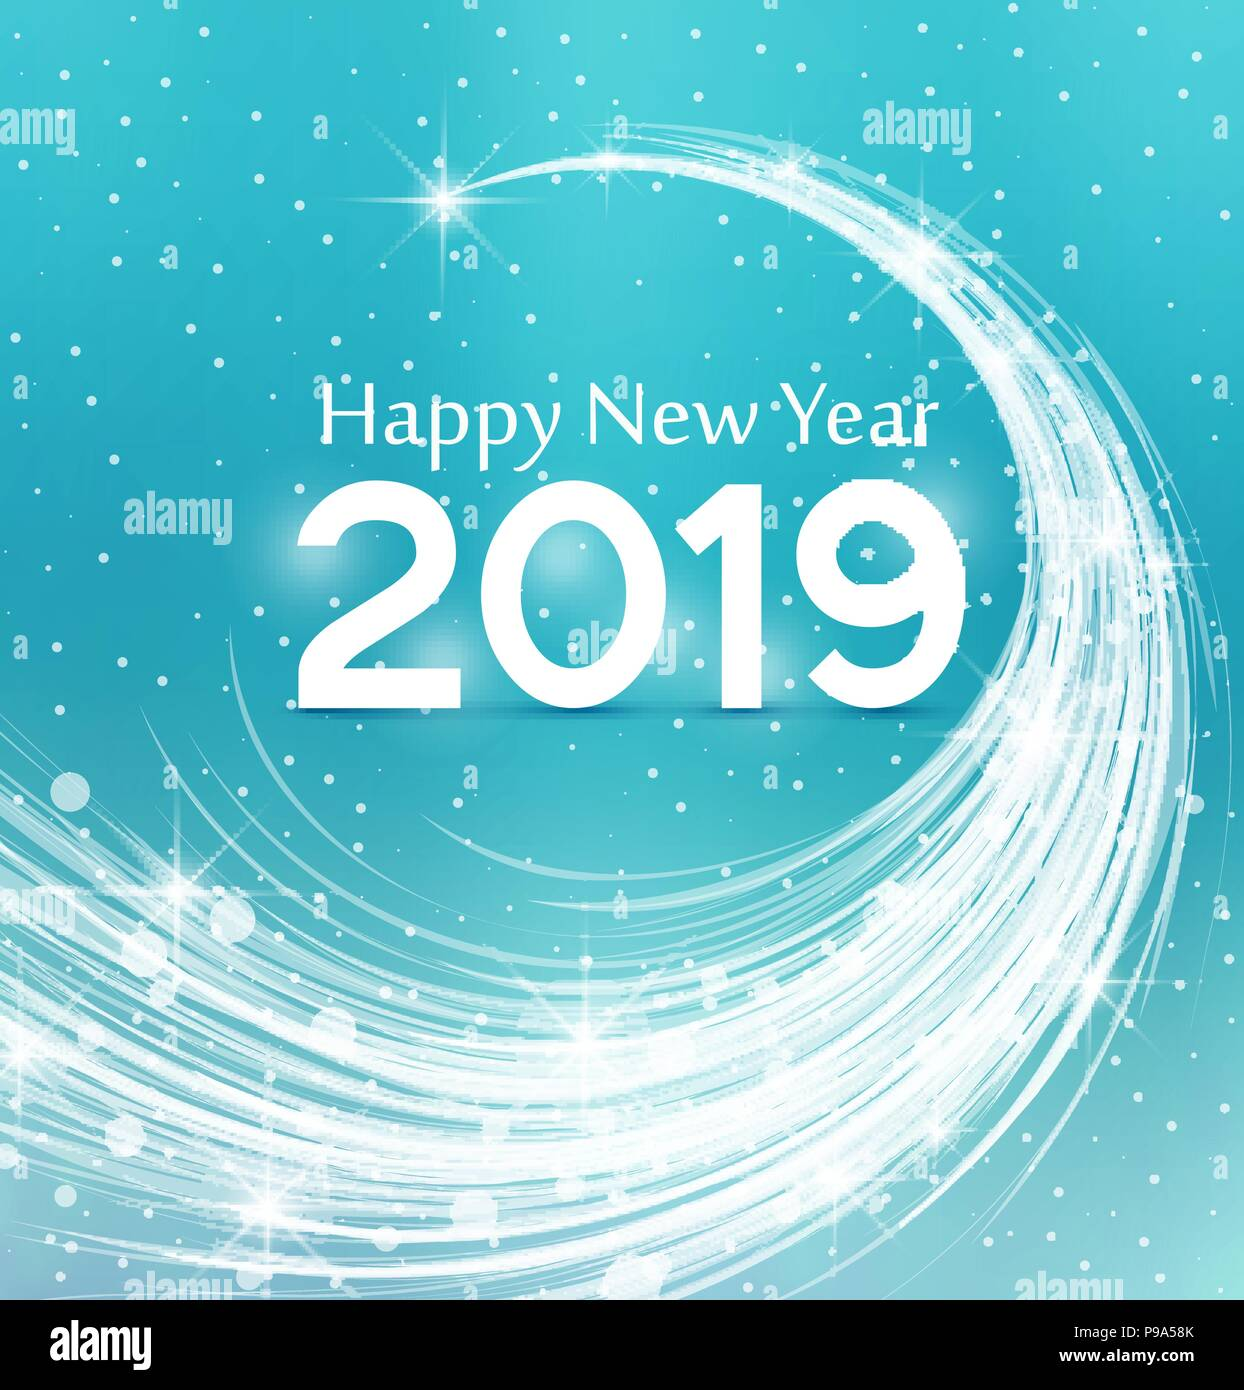 happy new year 2019 vector illustration christmas background